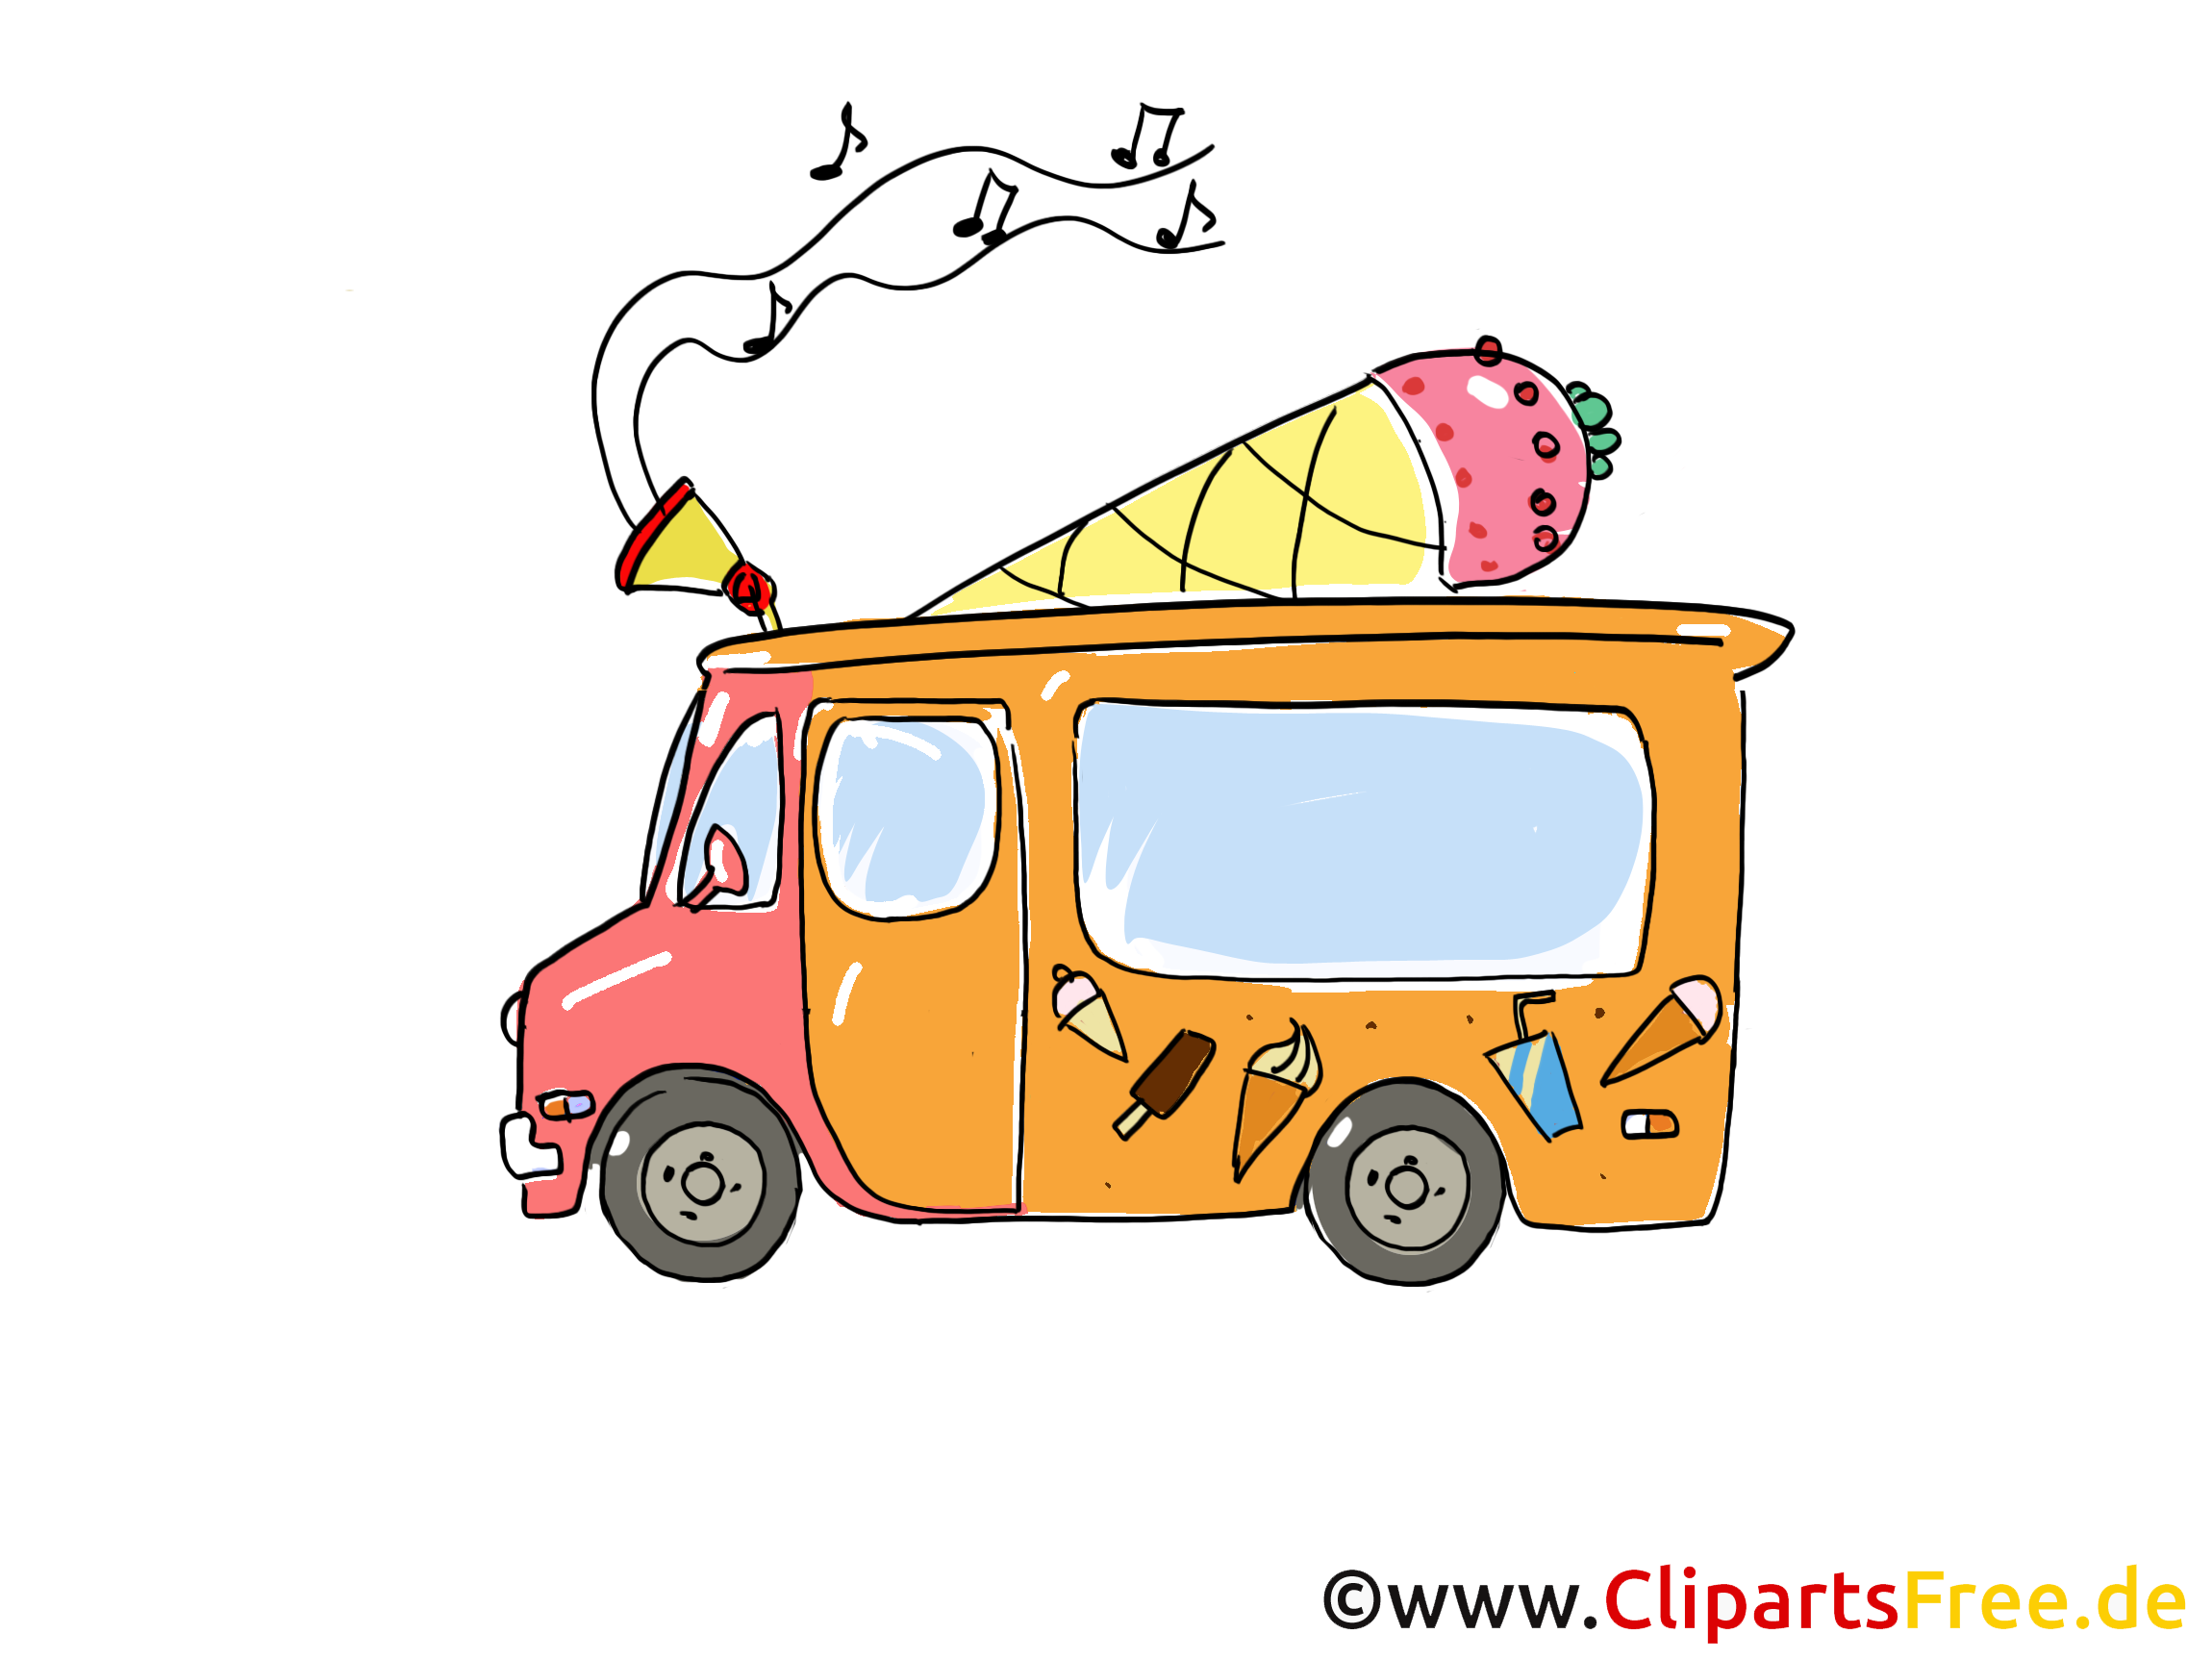 Suesswaren Wagen Clipart, Bild, Cartoon, Comic, Grafik